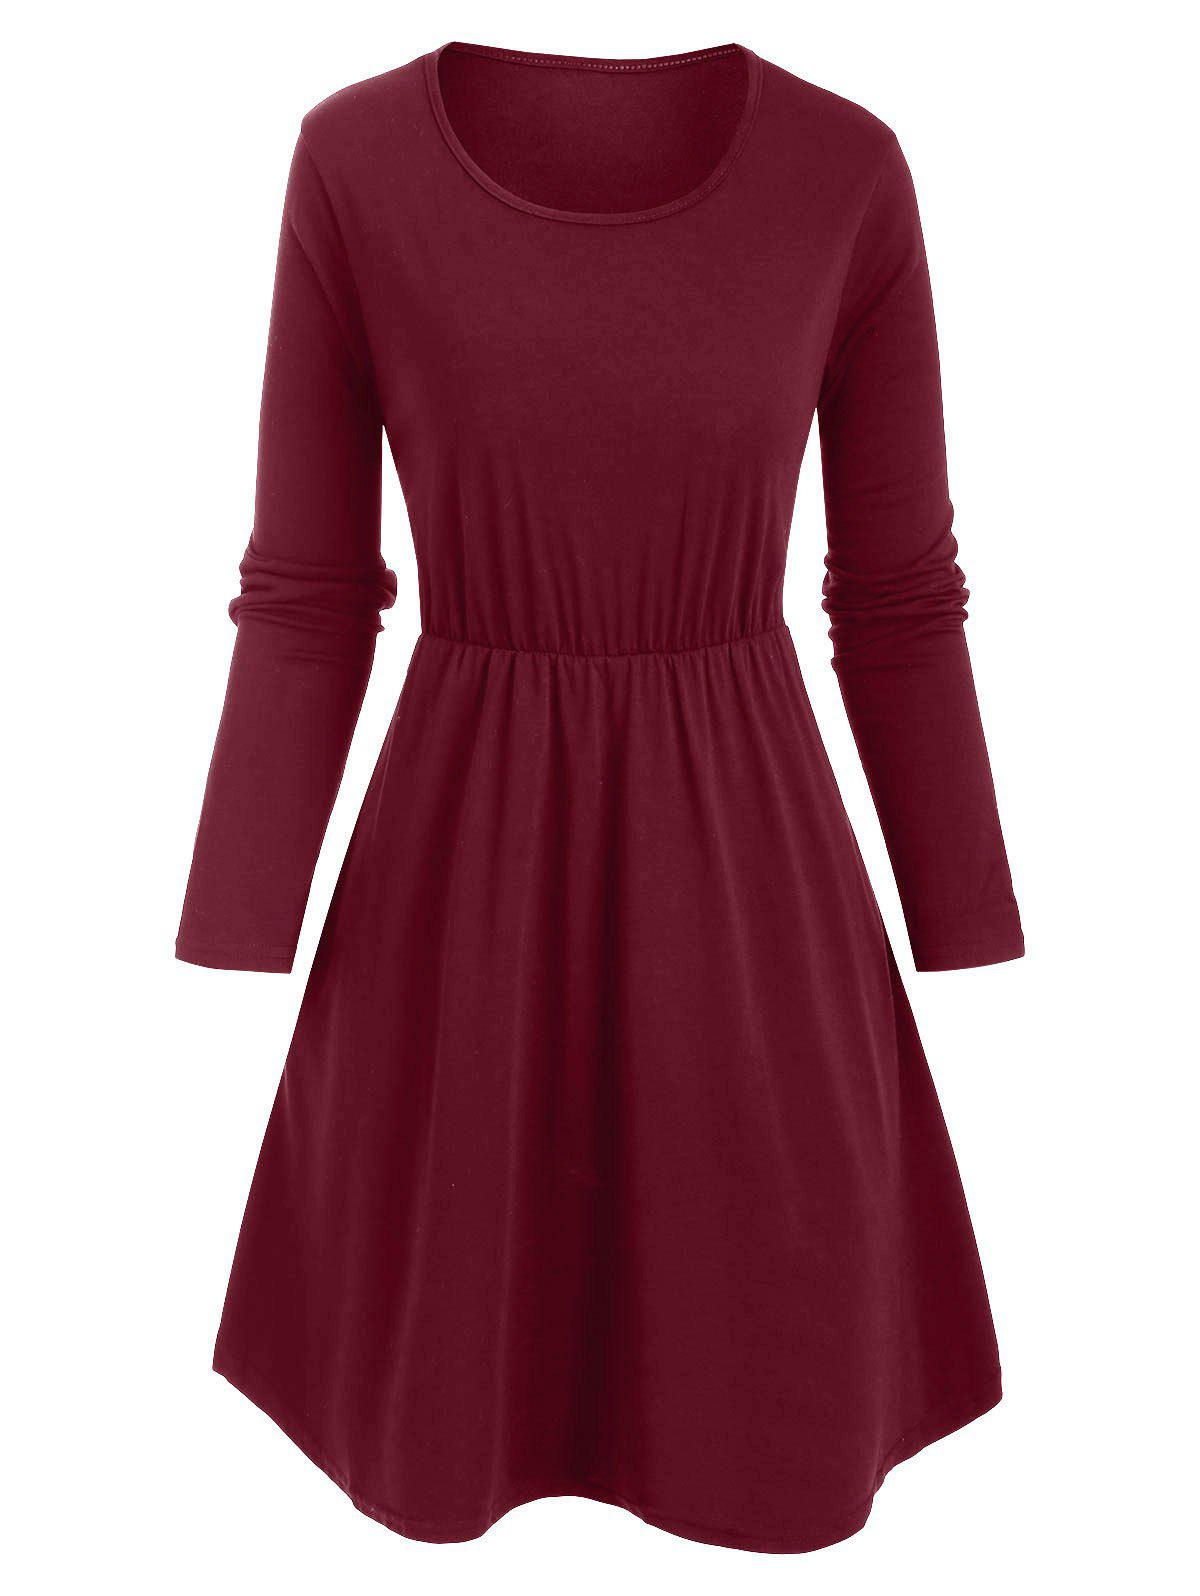 Slip Pockets Long Sleeve Tunic Dress - DEEP RED M